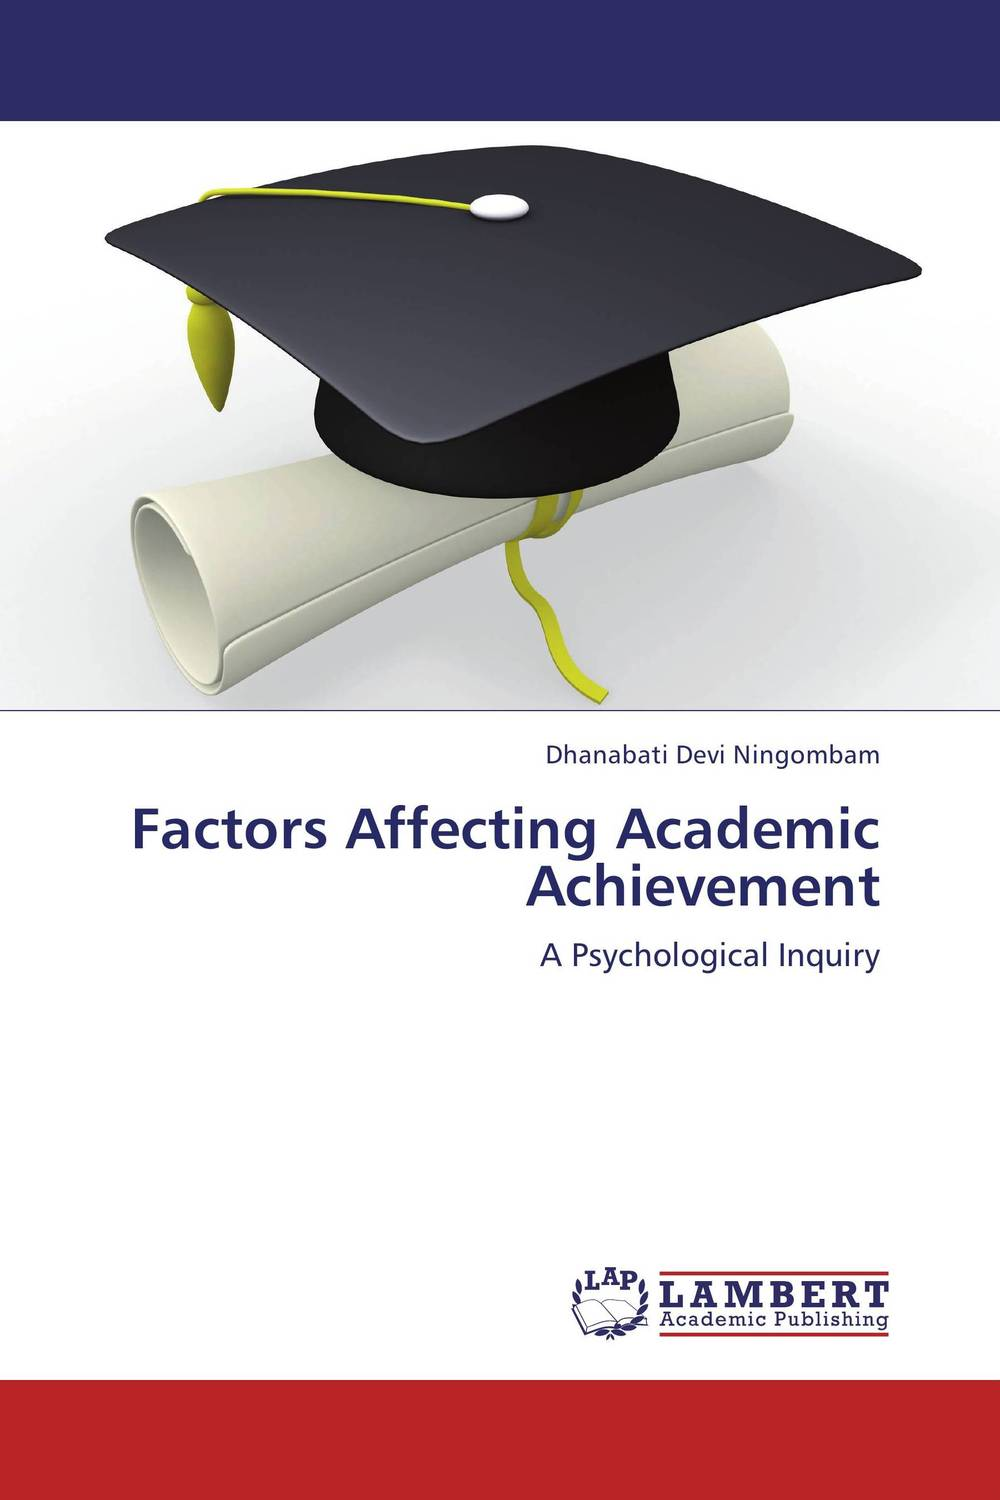 Factors Affecting Academic Achievement